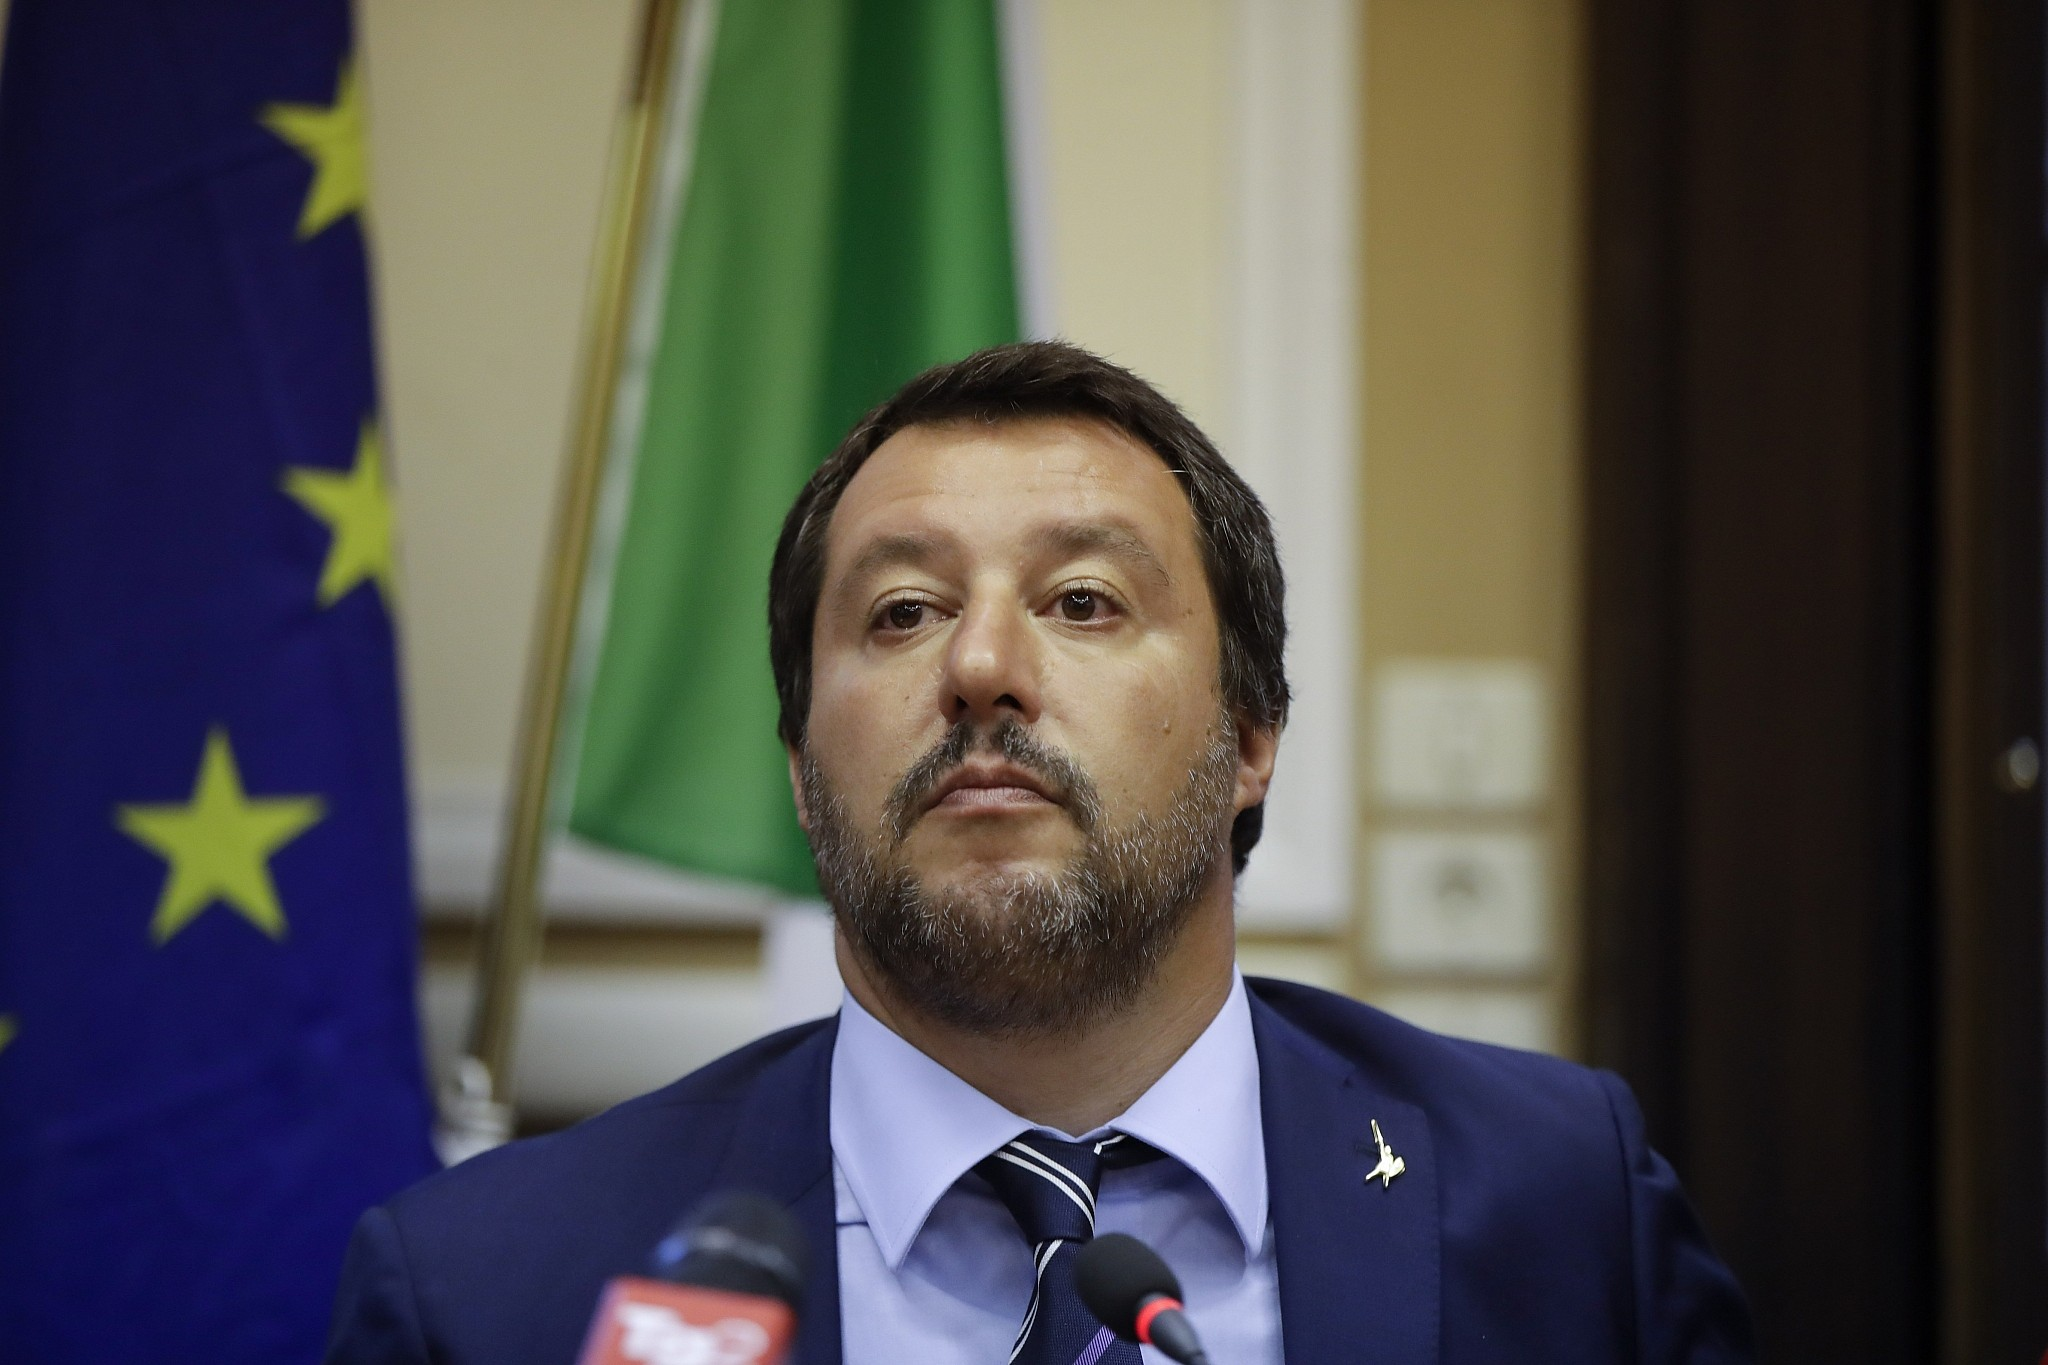 After Bannon talks, Italy's Salvini announces plan to ...